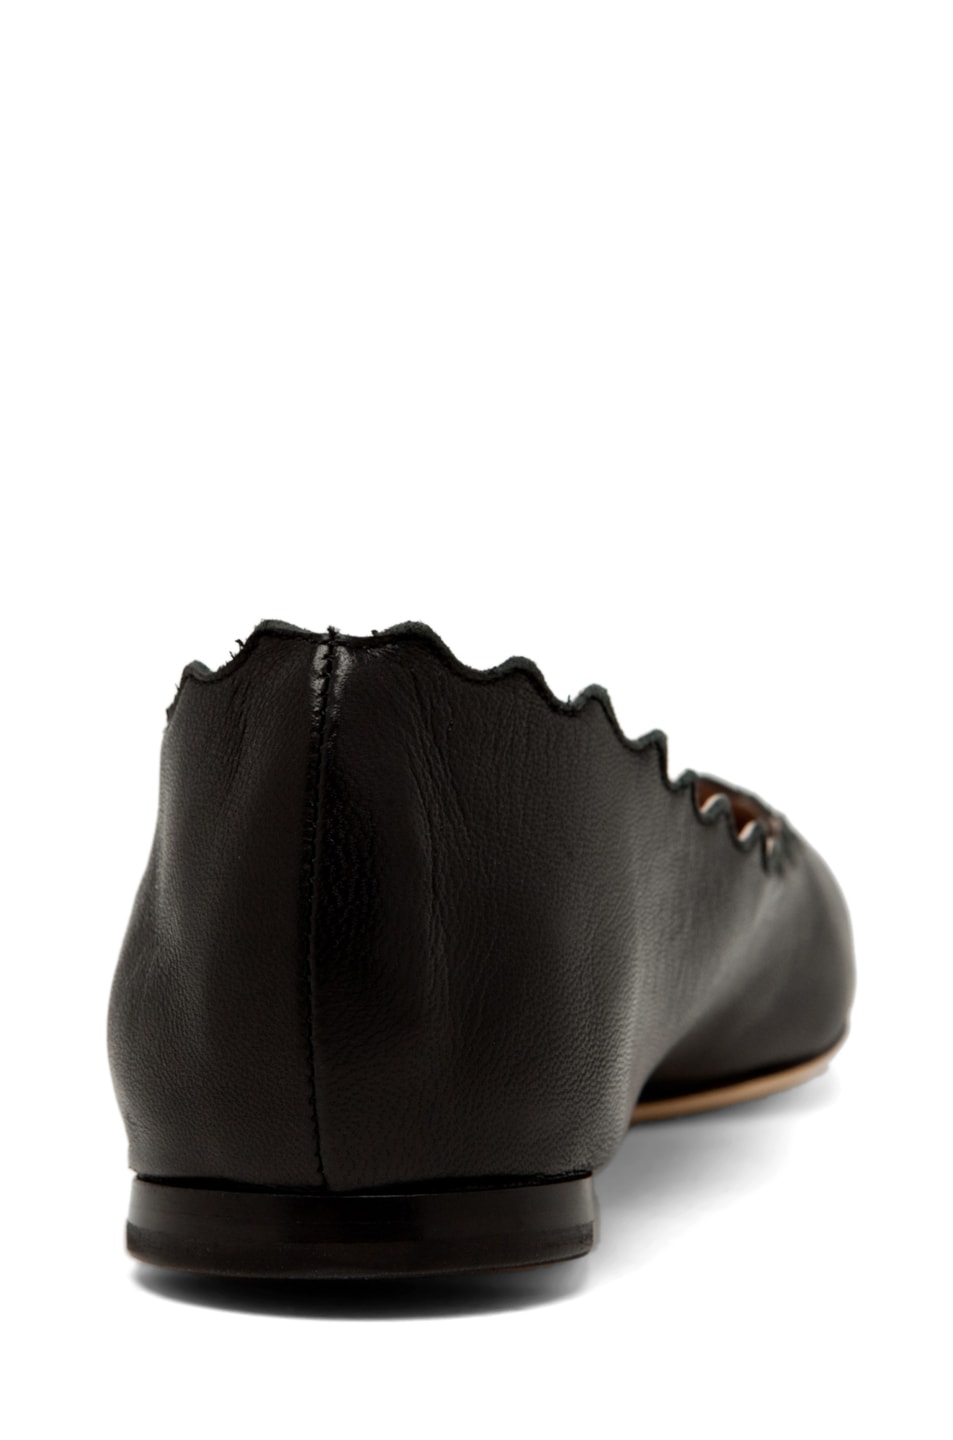 Image 3 of Chloe Lambskin Leather Scalloped Flats in Black